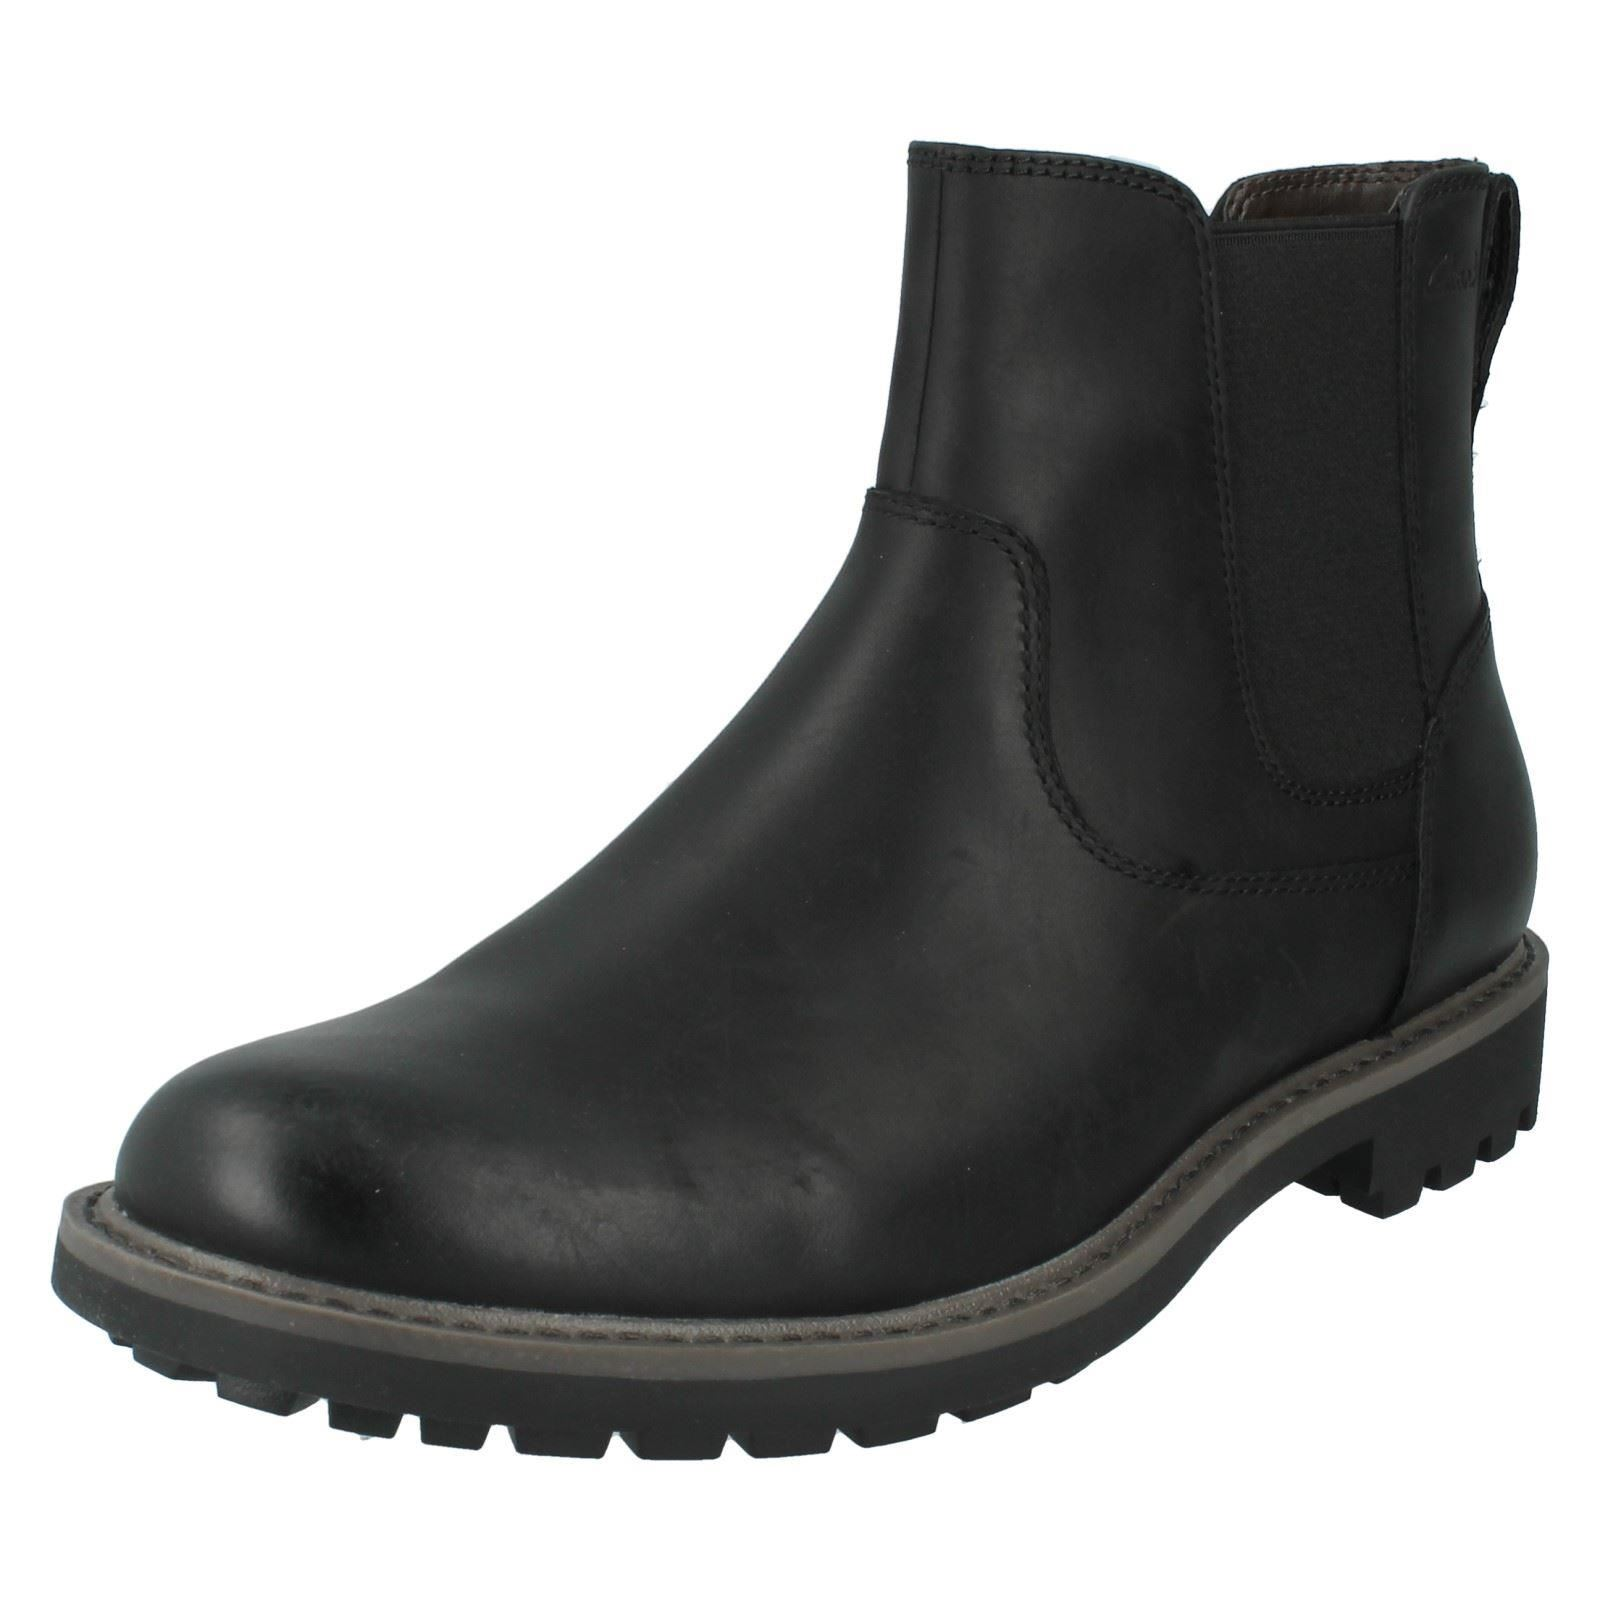 b1f3a42a Mens Clarks Montacute Top Leather Chunky Chelsea BOOTS G Fitting UK 8.5  Black